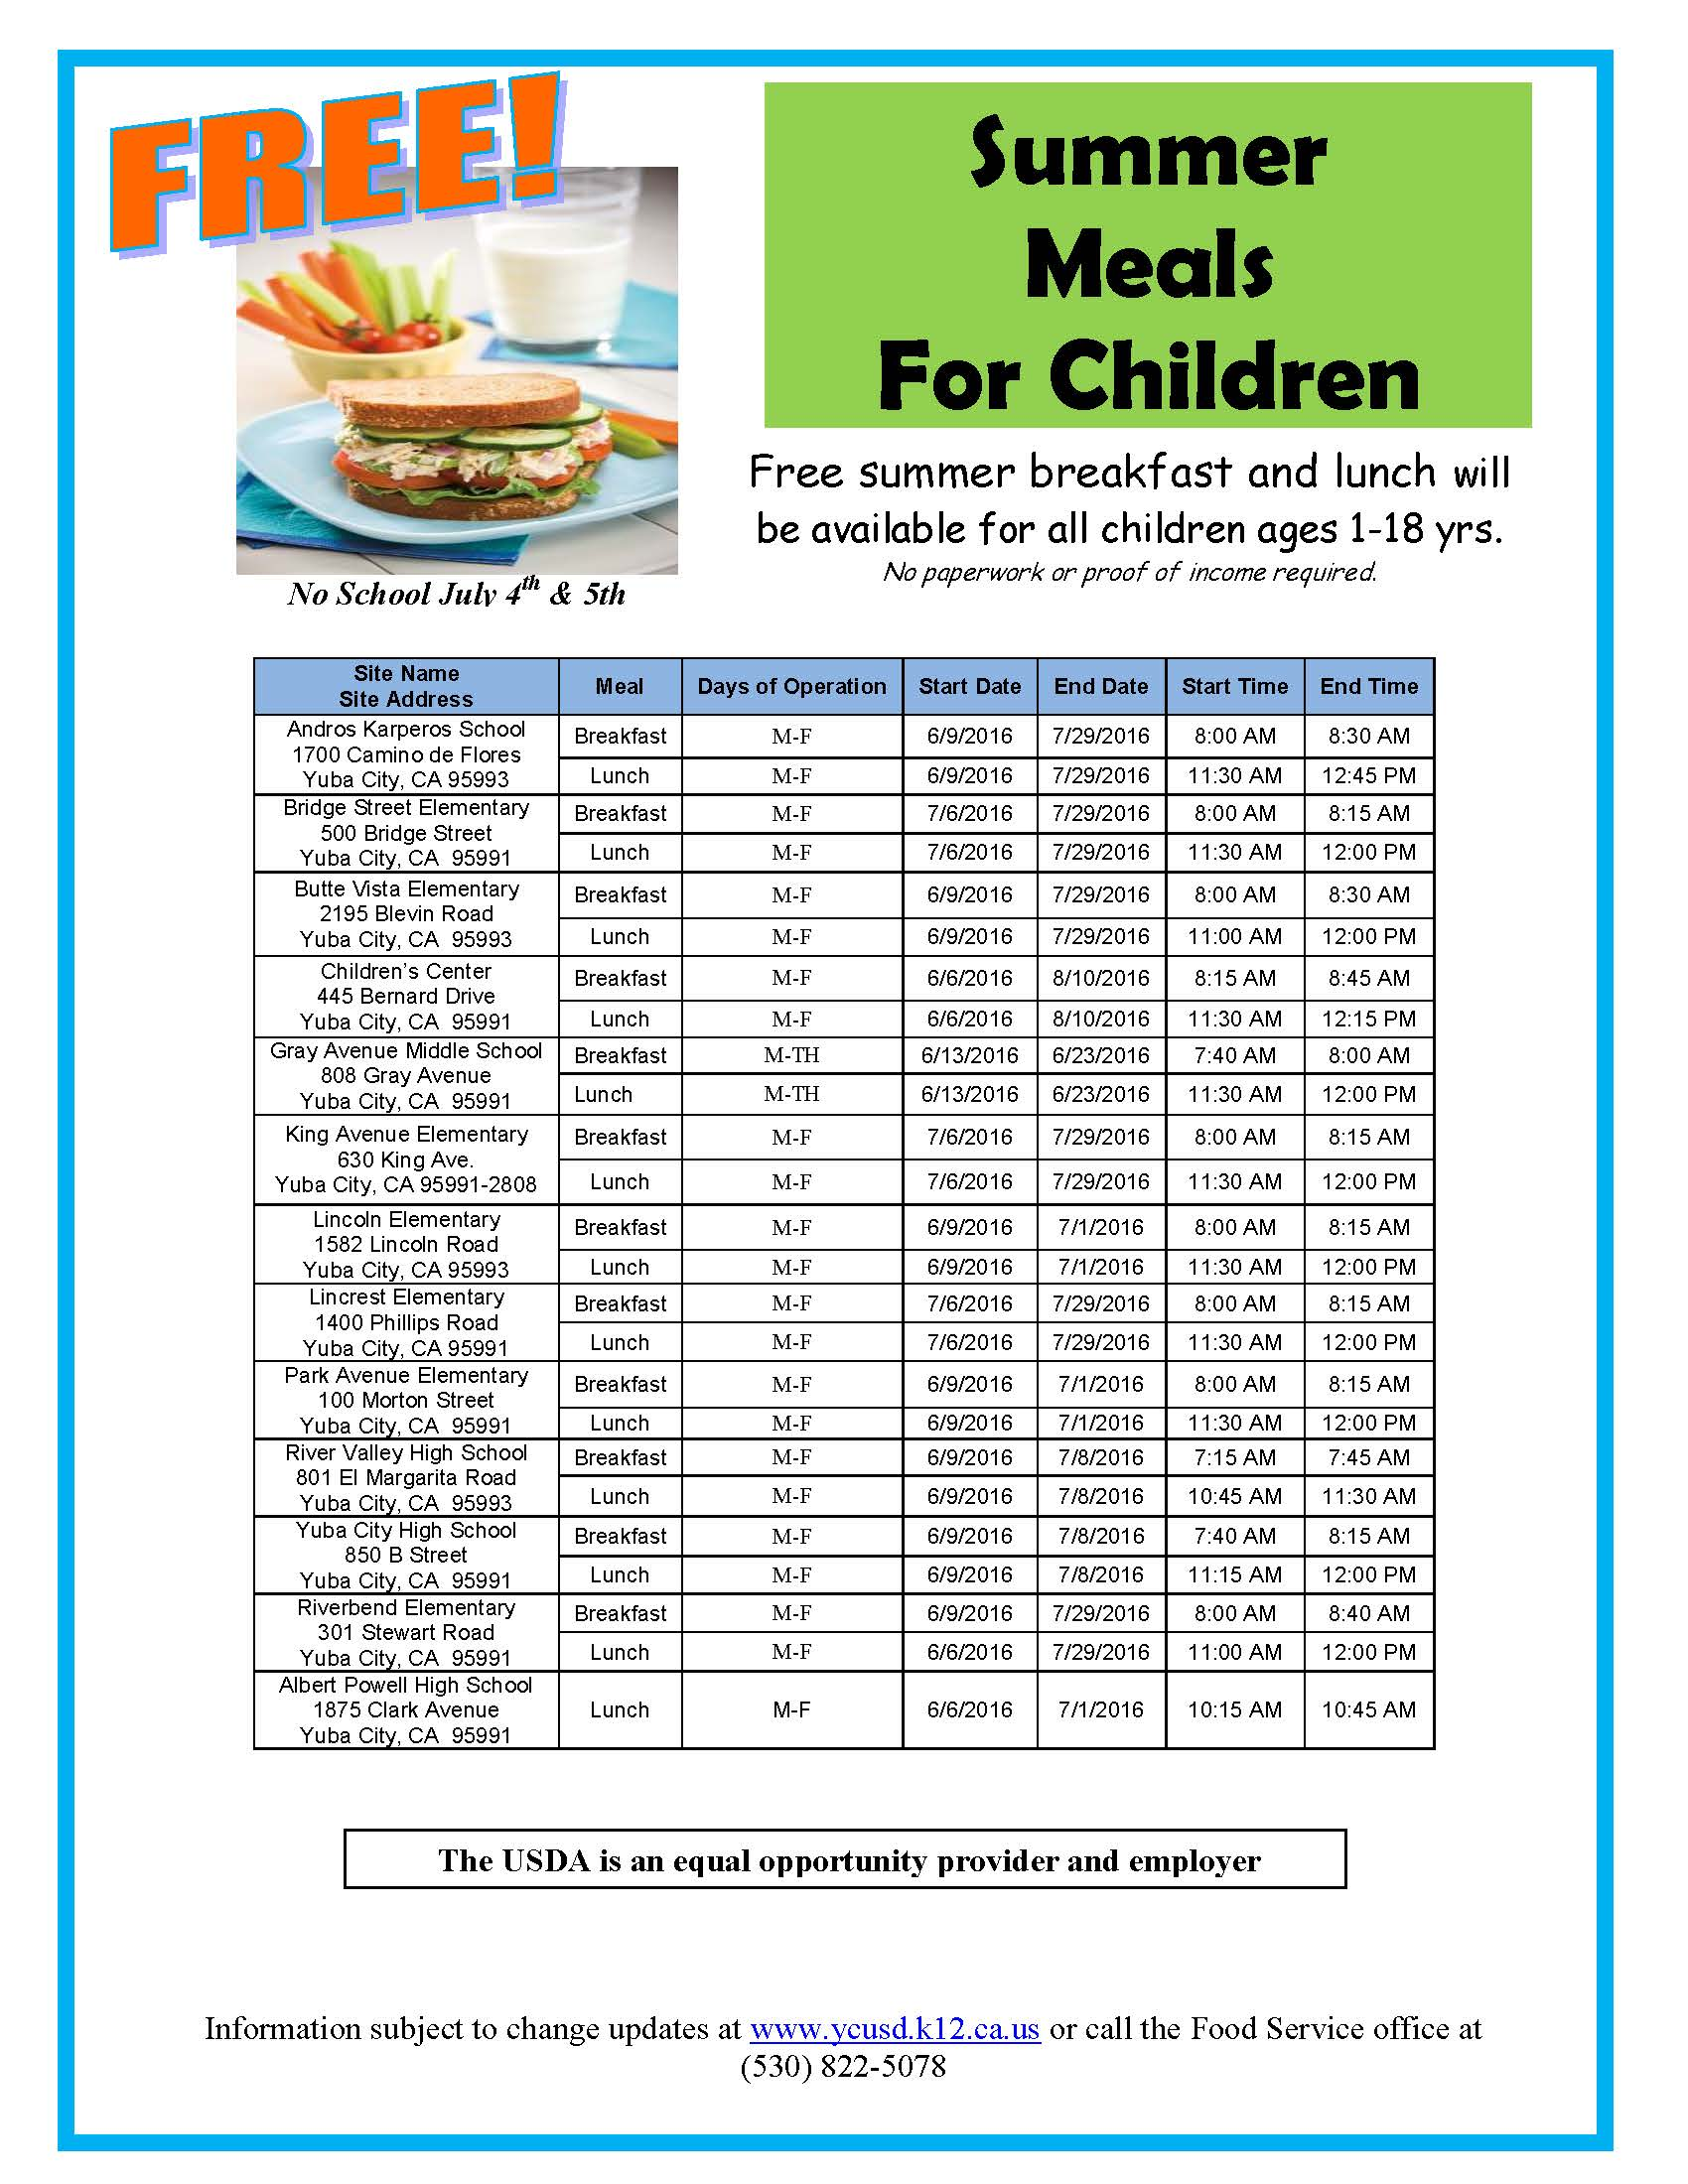 Summer free food poster YCUSD 2016